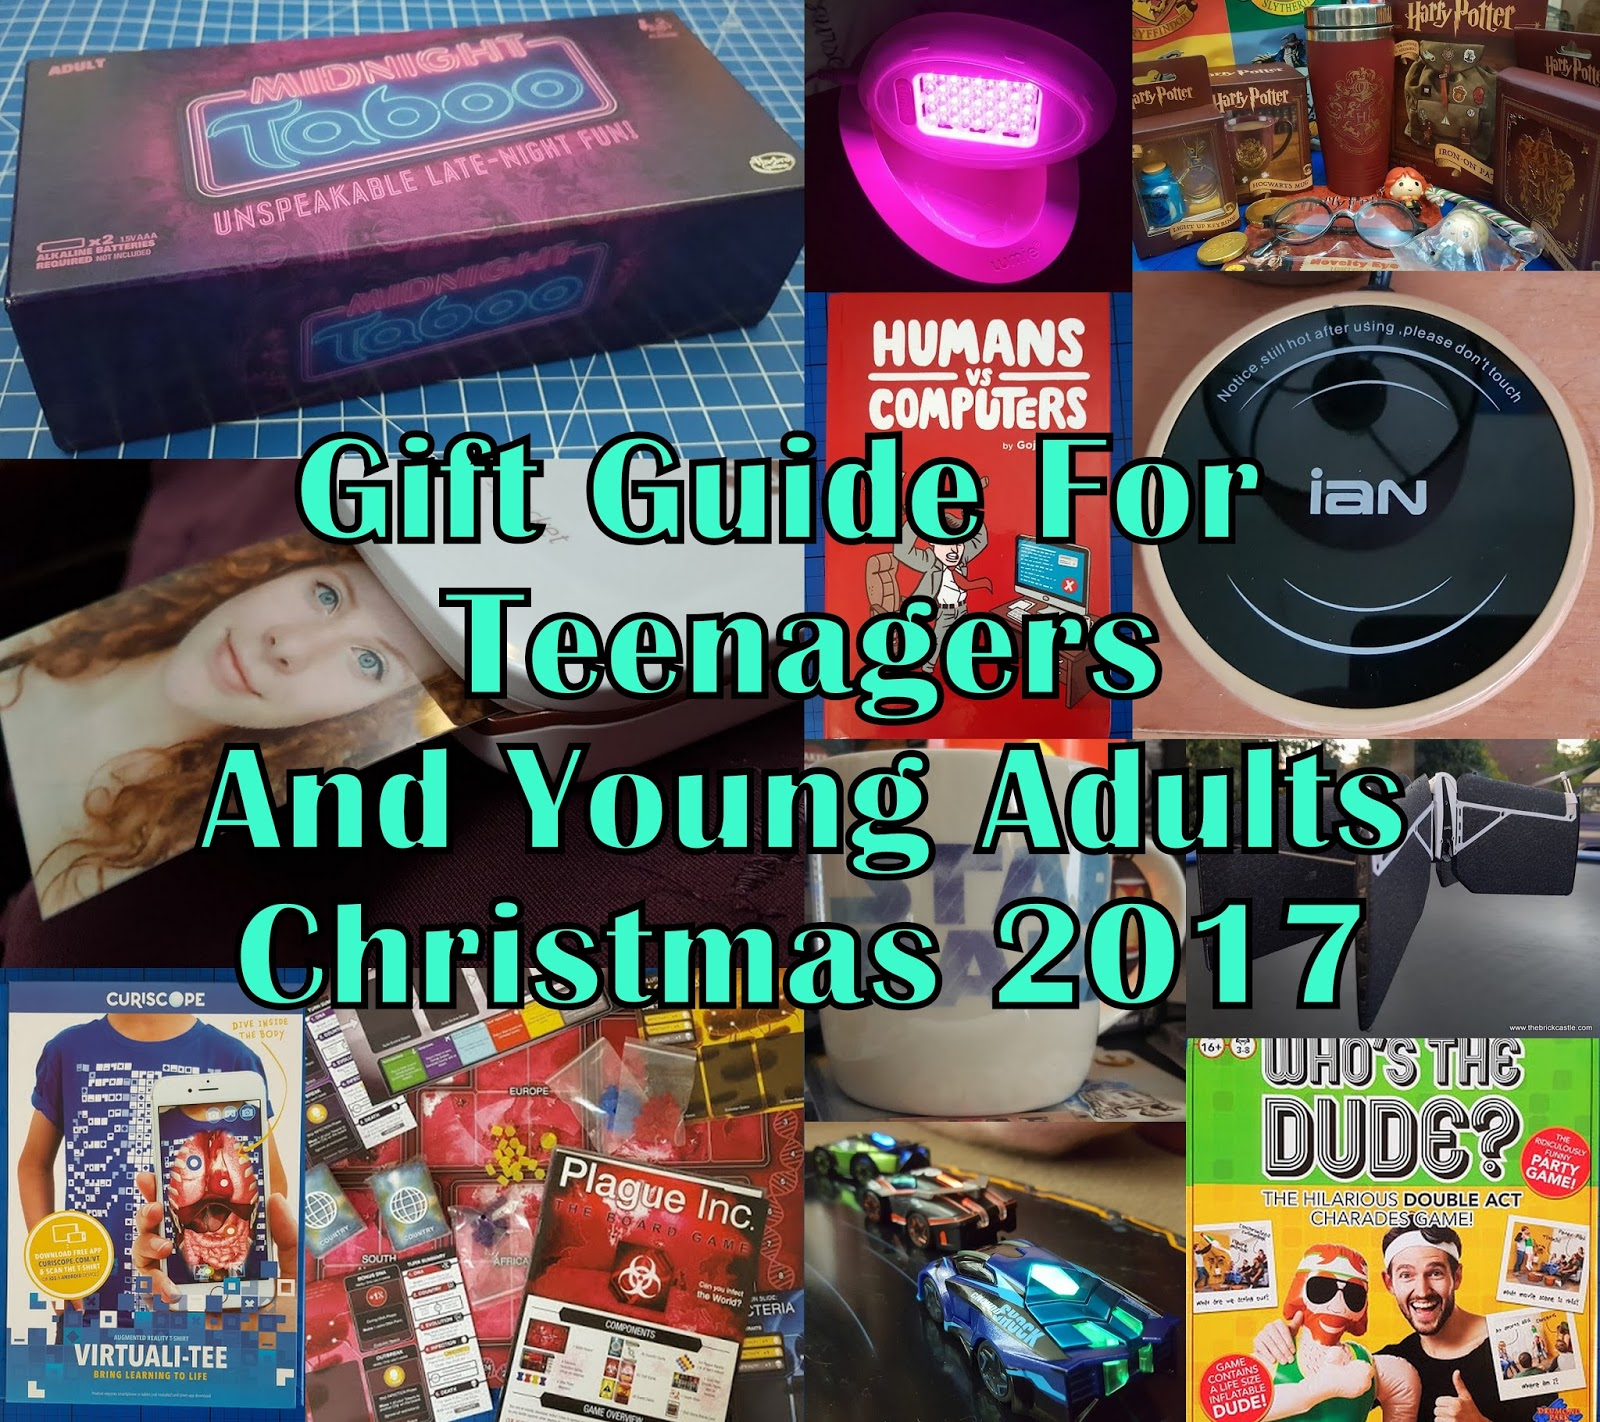 The Brick Castle Gift Guide For Teenagers And Young Adults Christmas 2017